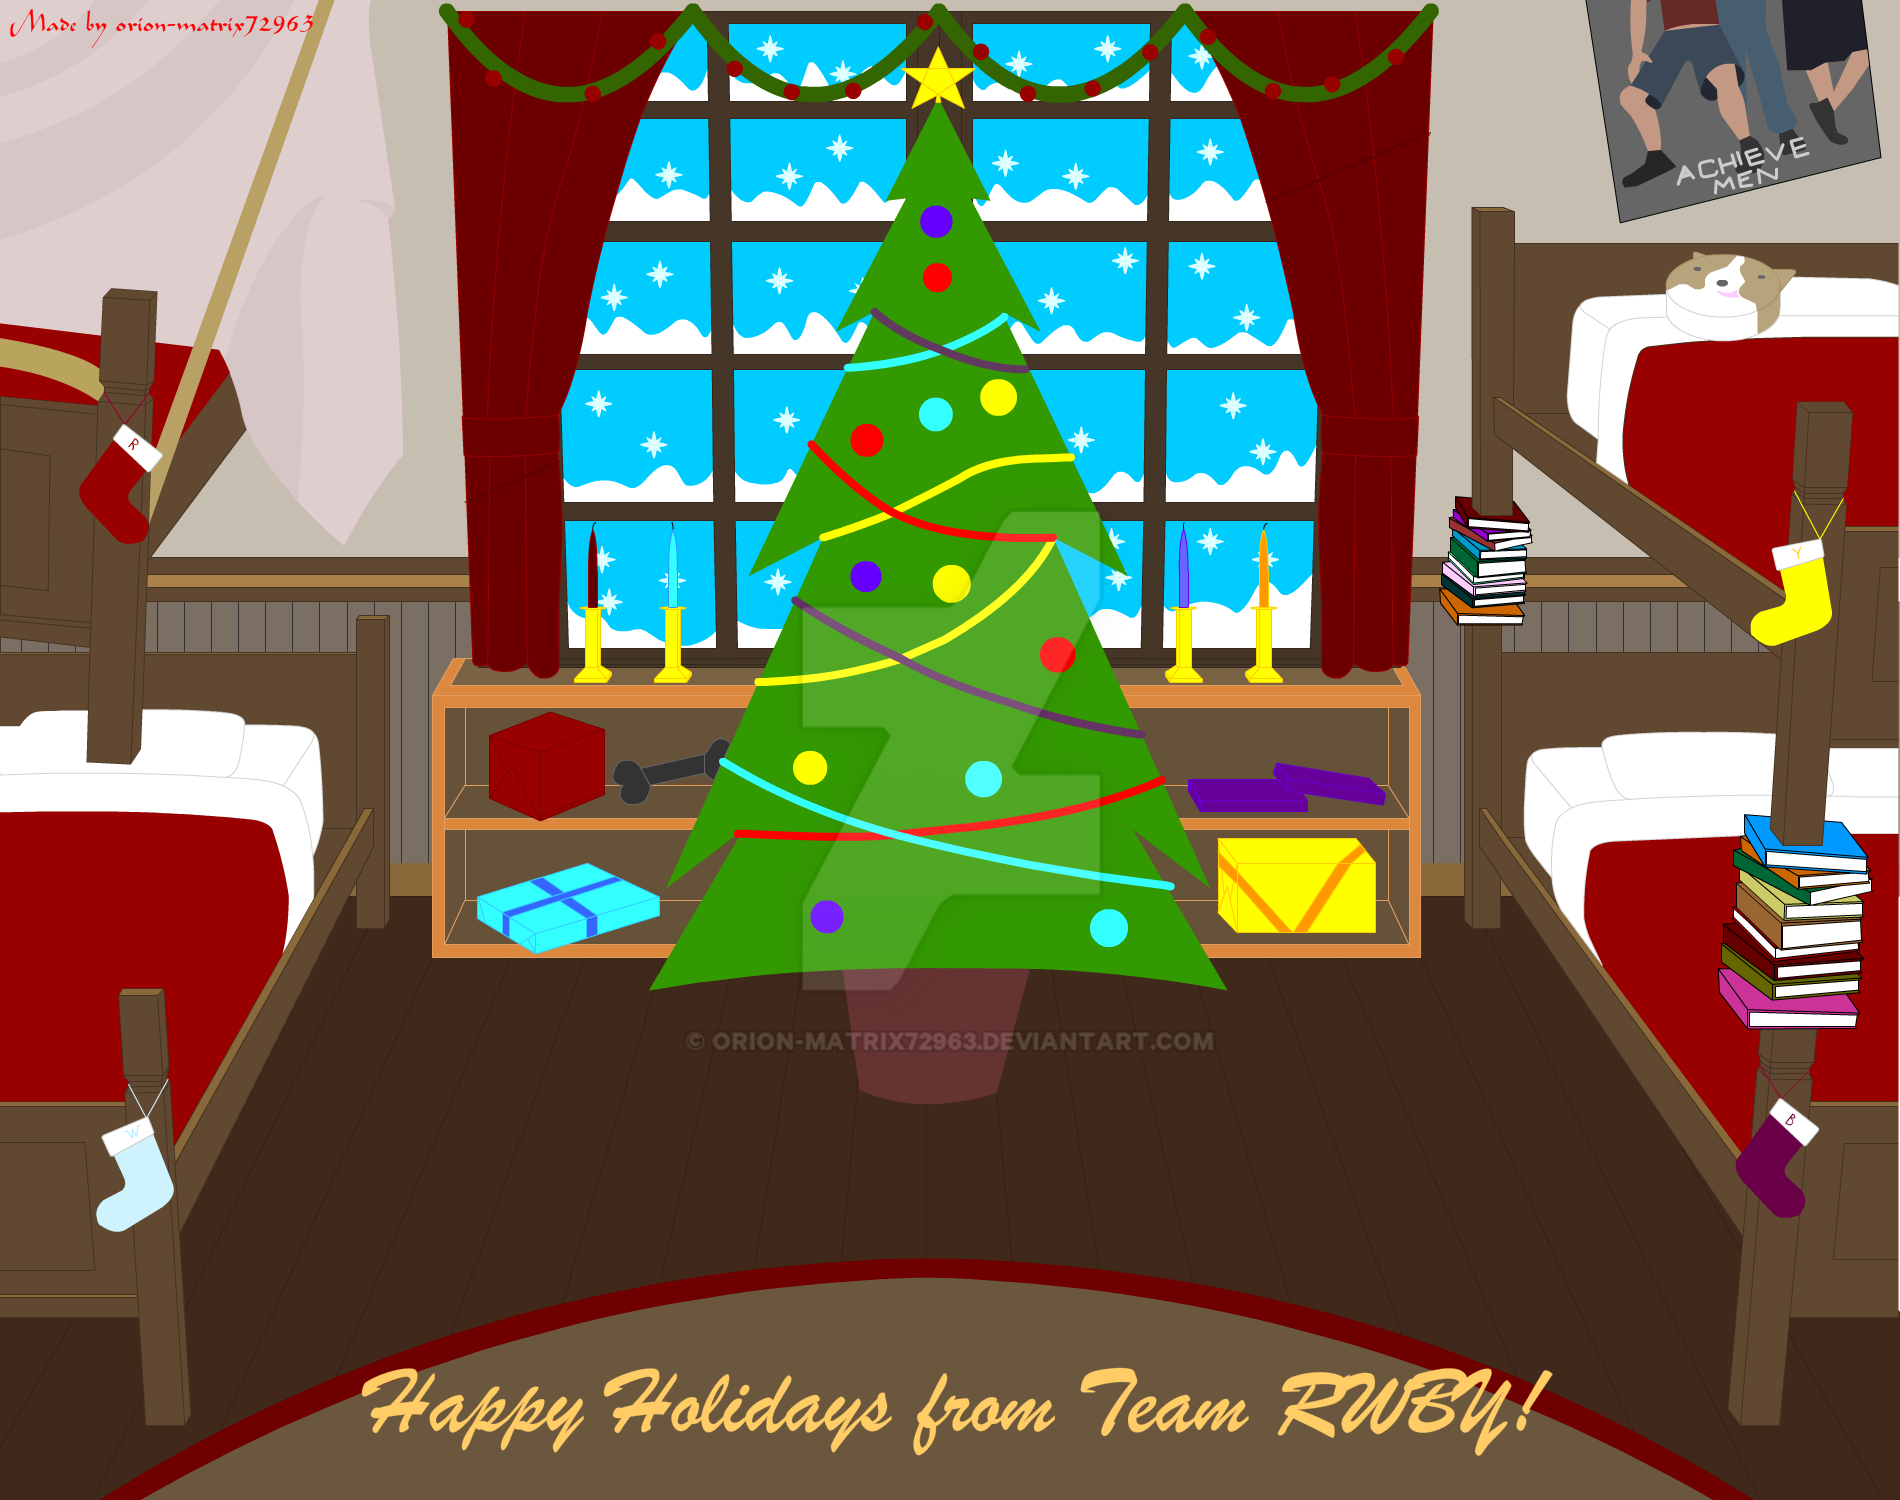 rwby_christmas_card_a_by_orion_matrix729